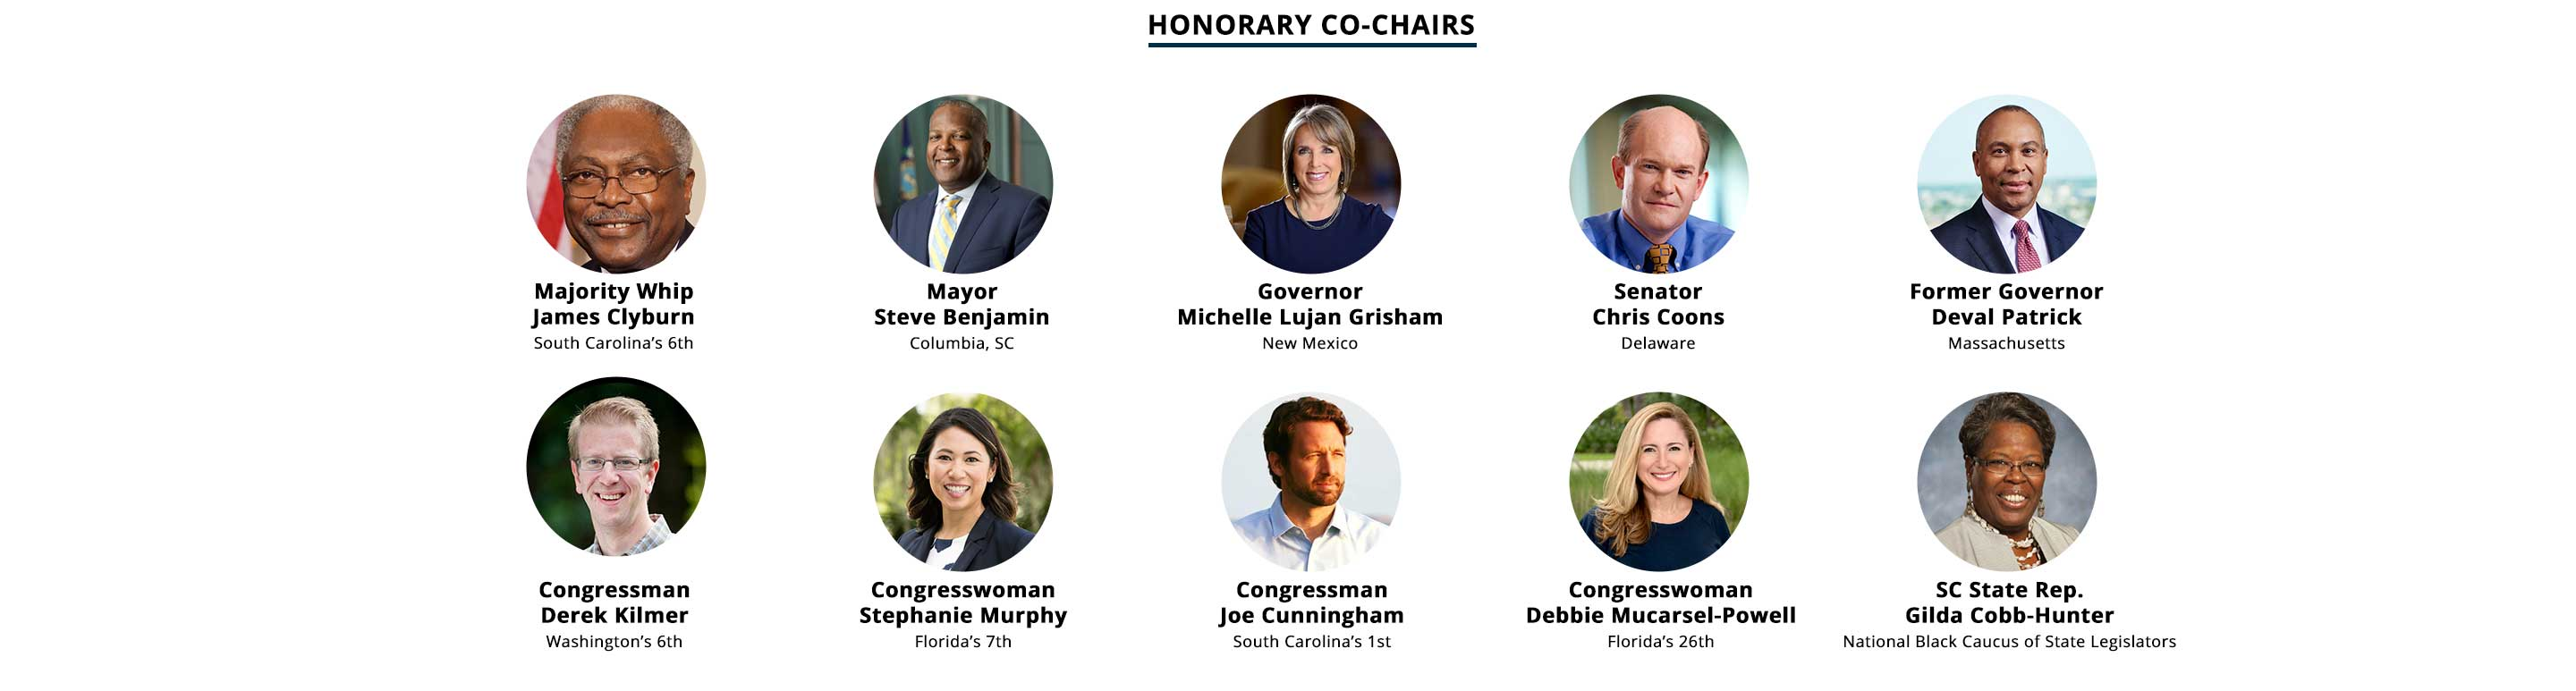 Opportunity 2020 Honorary Co-Chairs